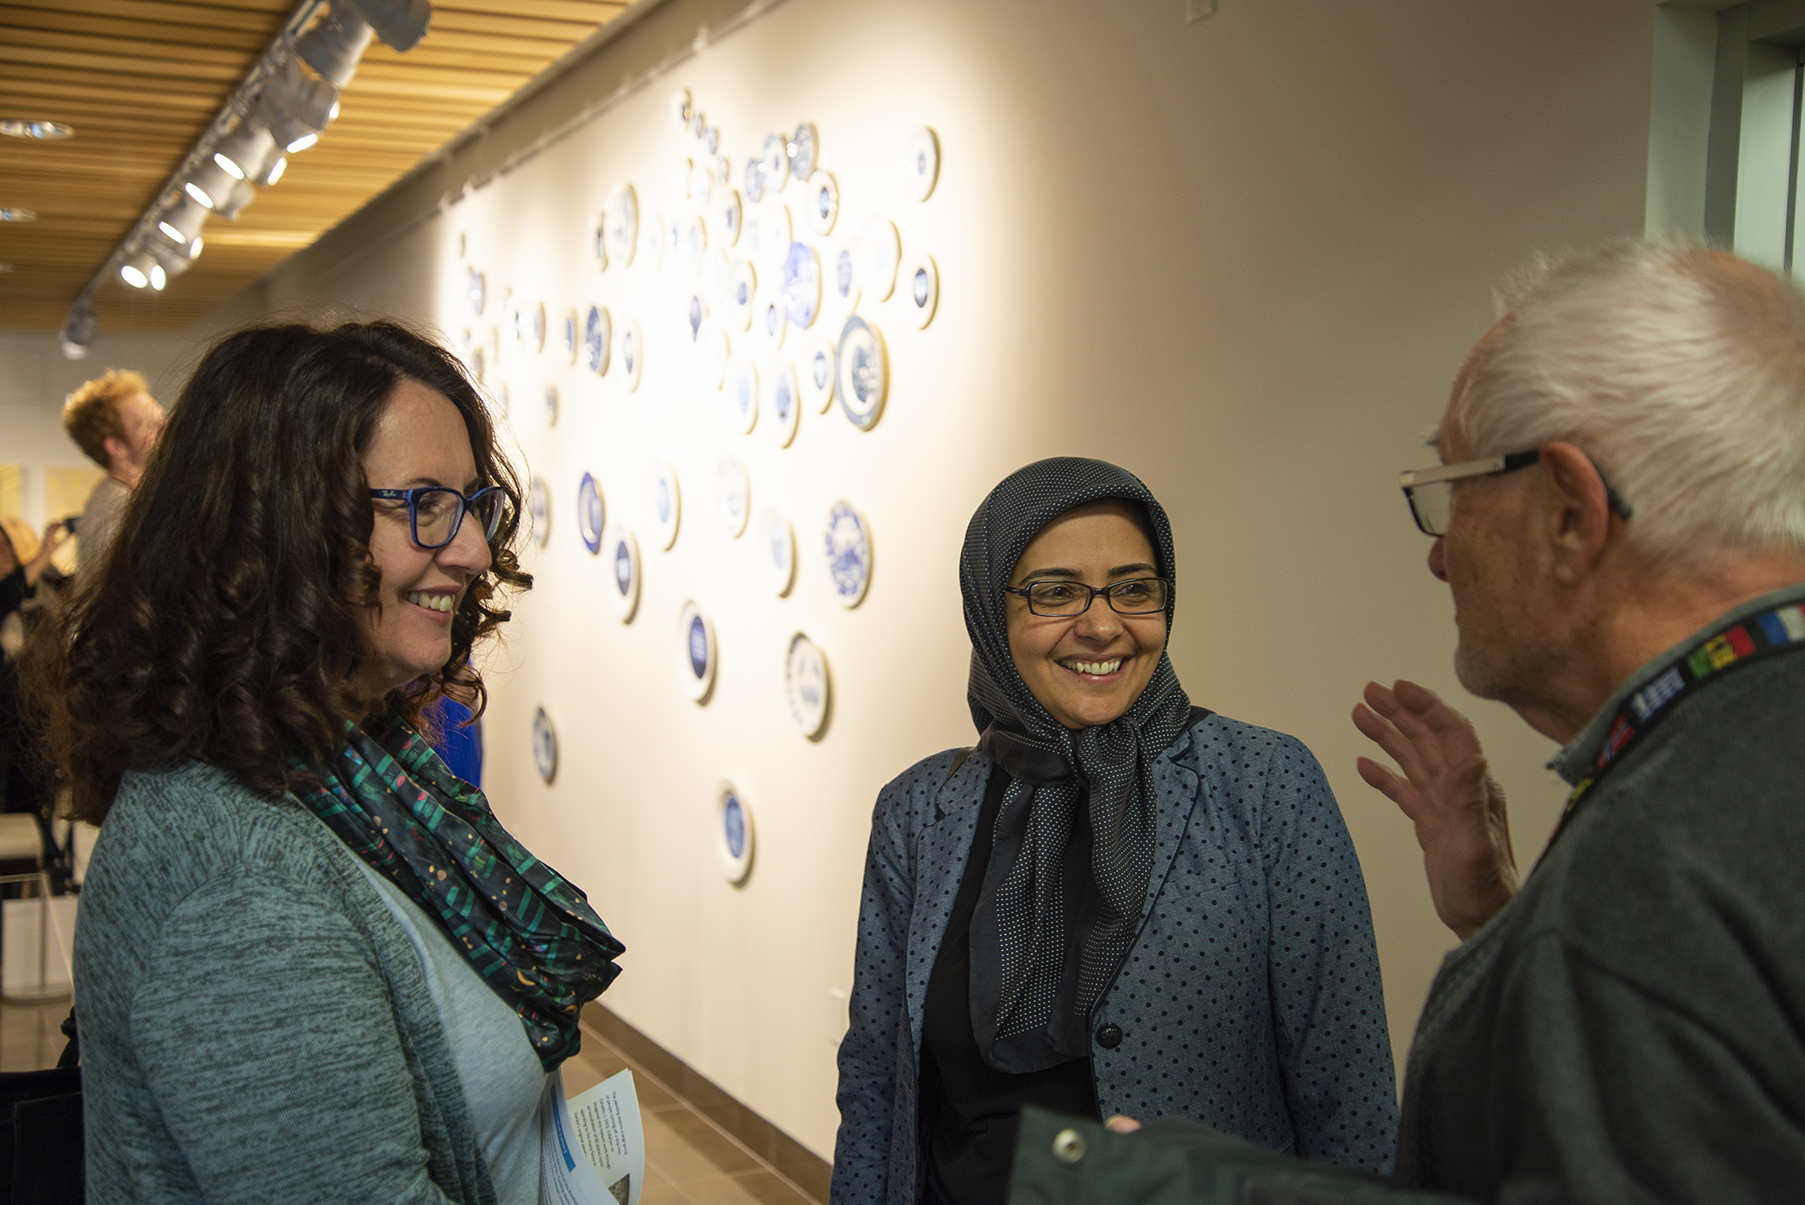 Artist Soheila Esfahani chats with Grebel Gallery guests